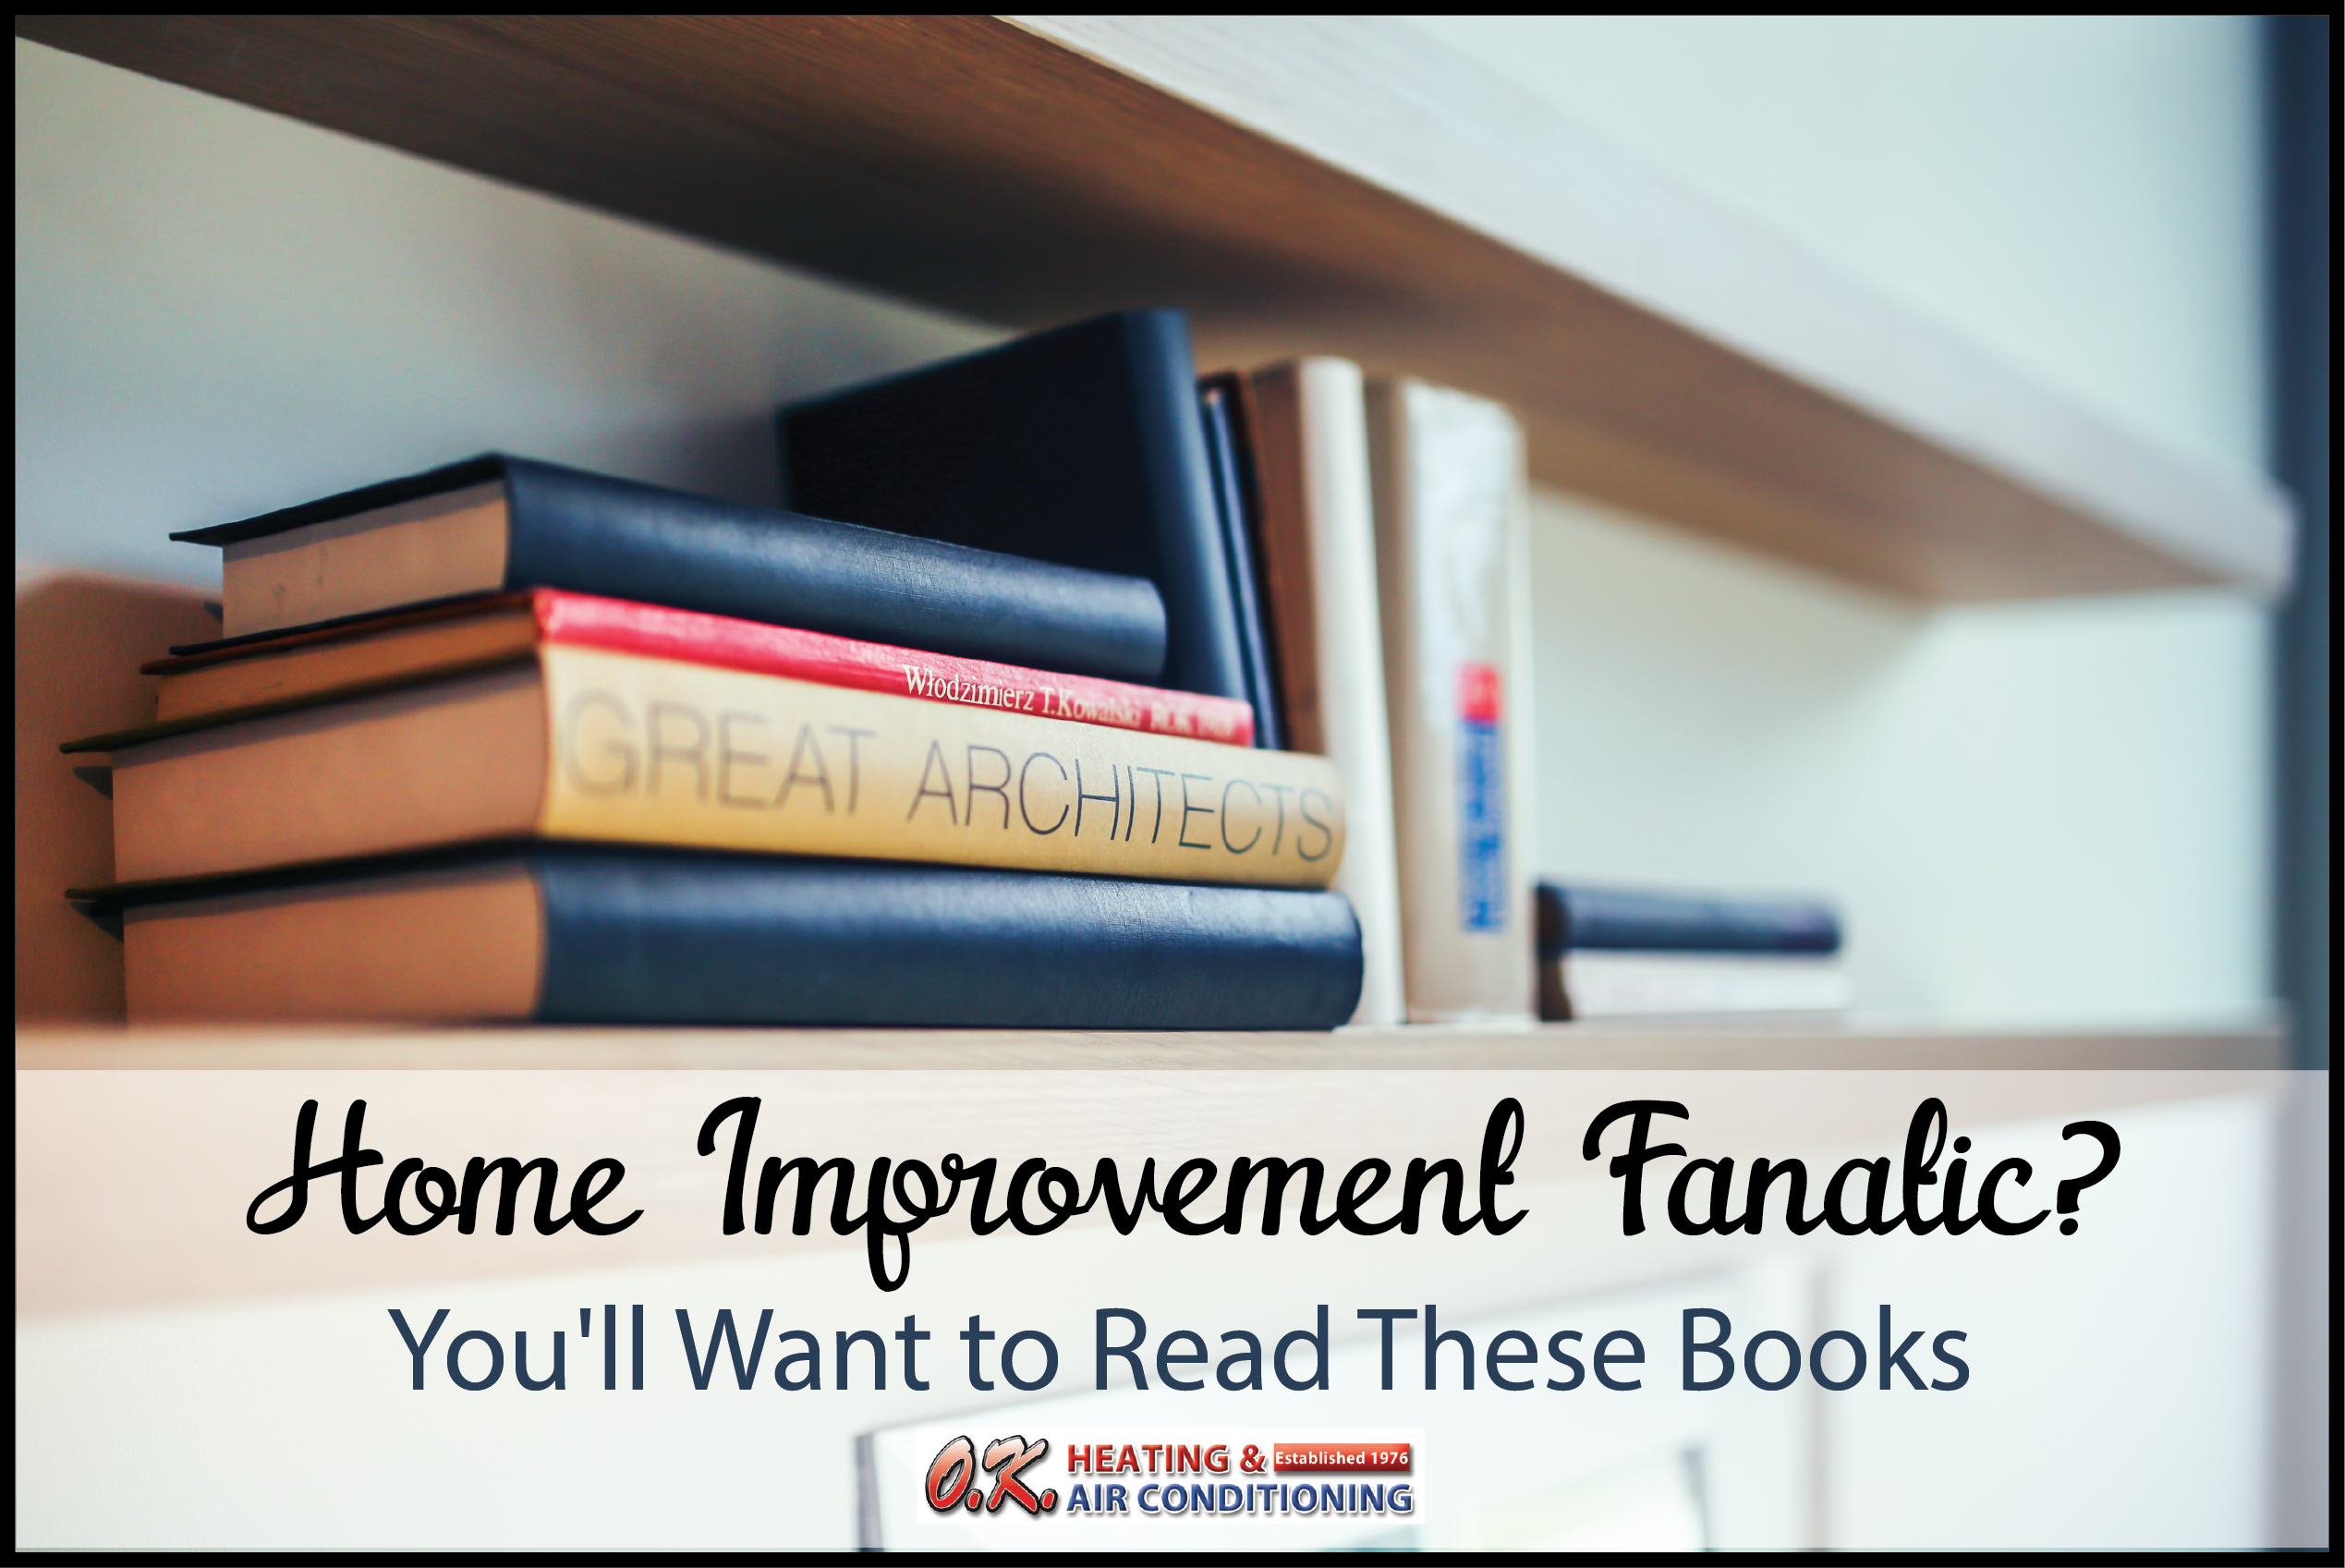 Top Books for Home Improvement